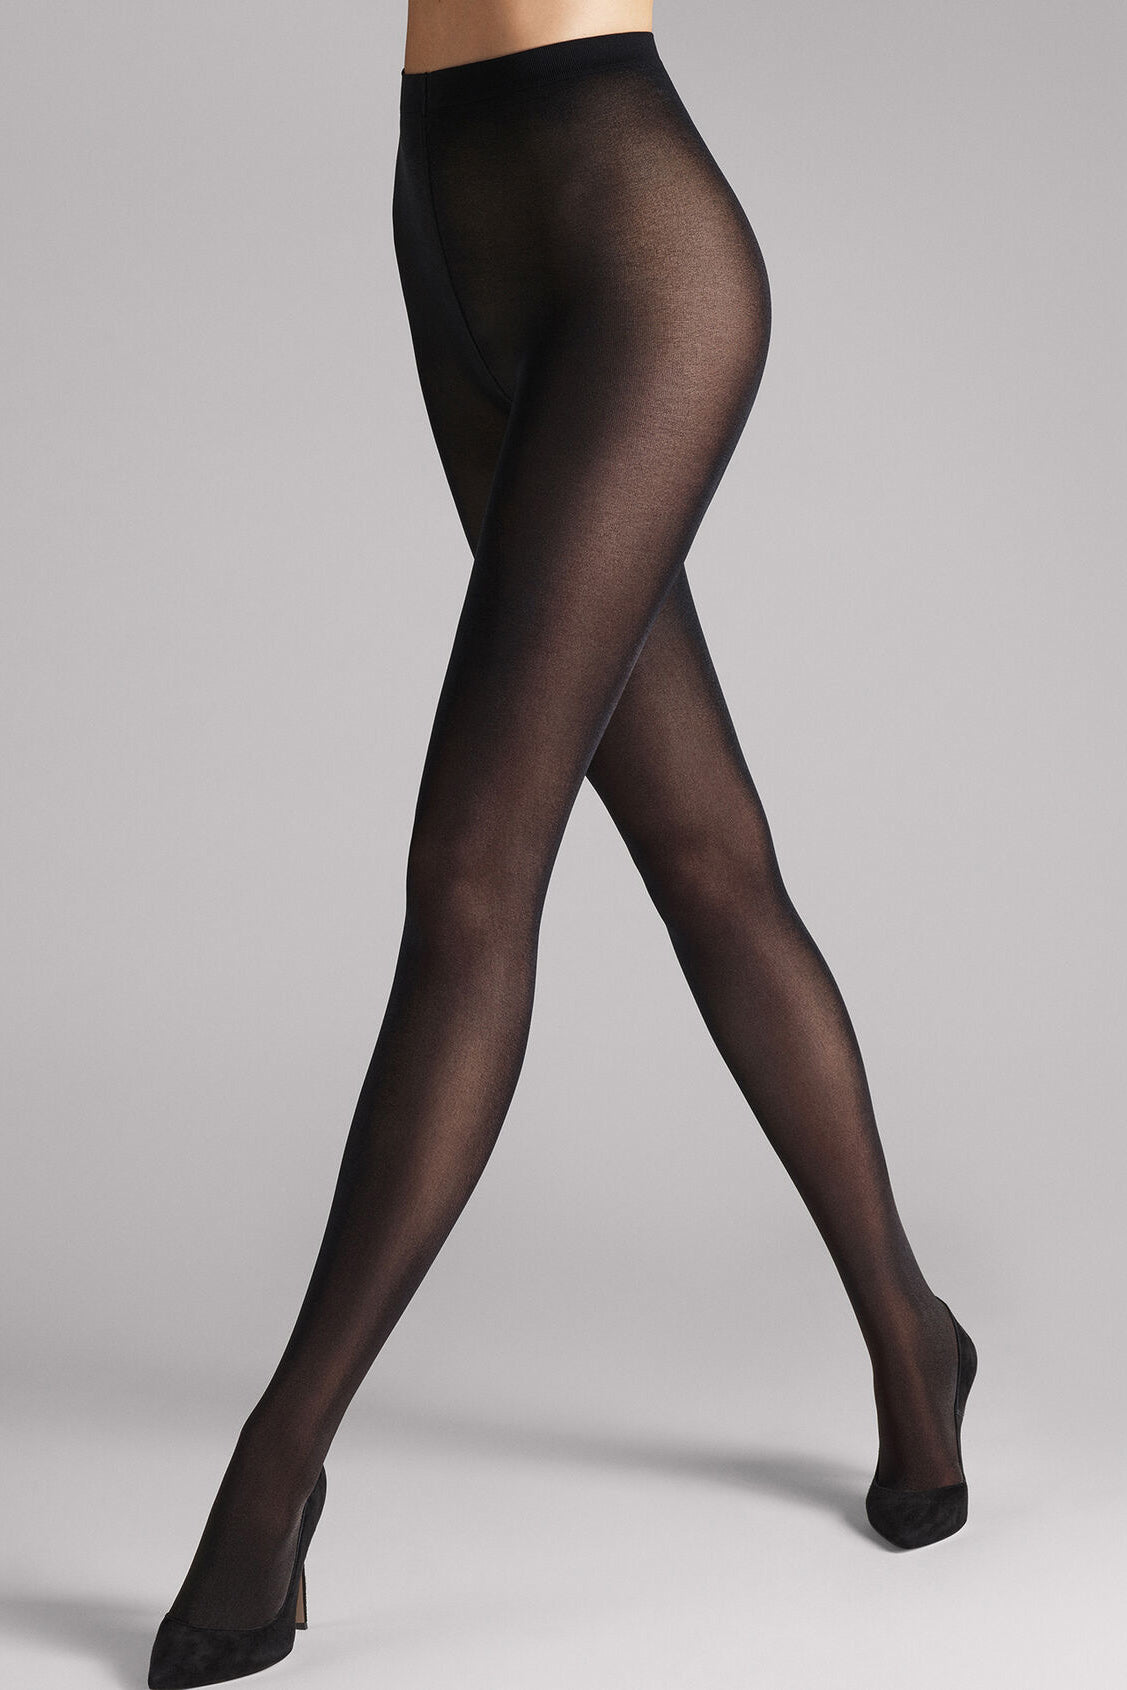 Wolford Satin Opaque 50 Tights in Black - Vert & Vogue